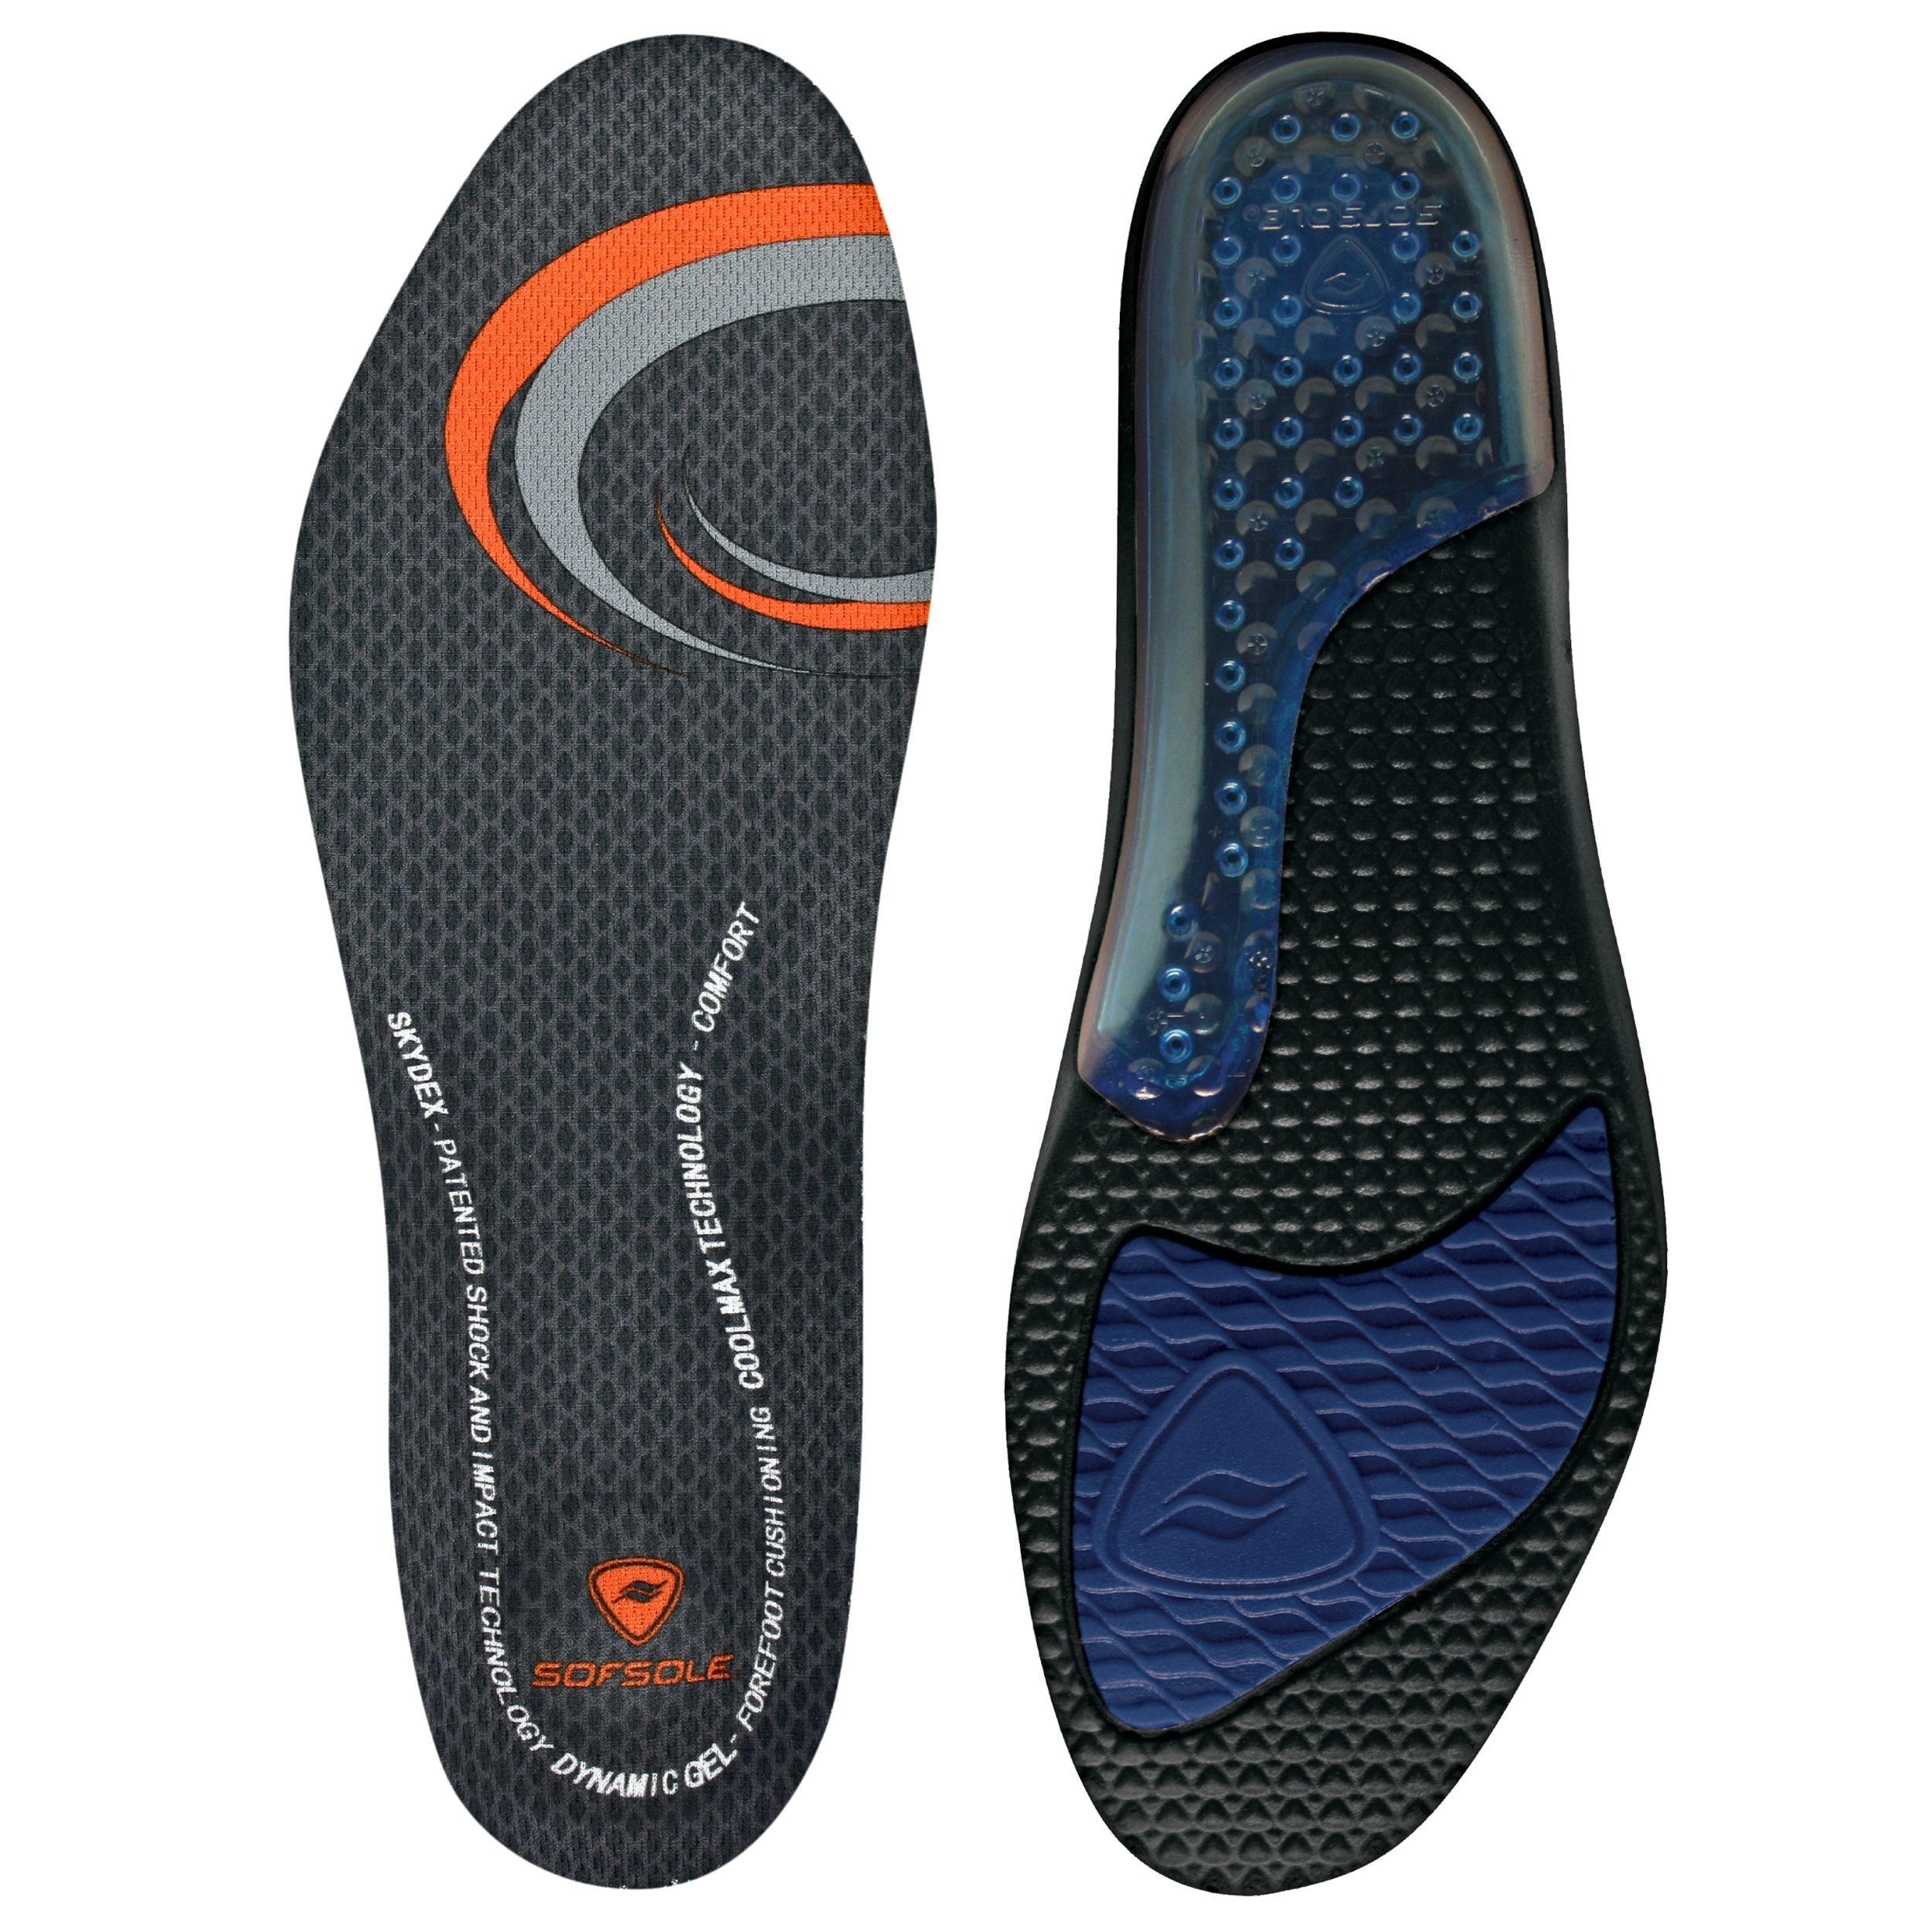 Sof Sole Airr Insole, Black, Men's 9-10.5 by Sof Sole